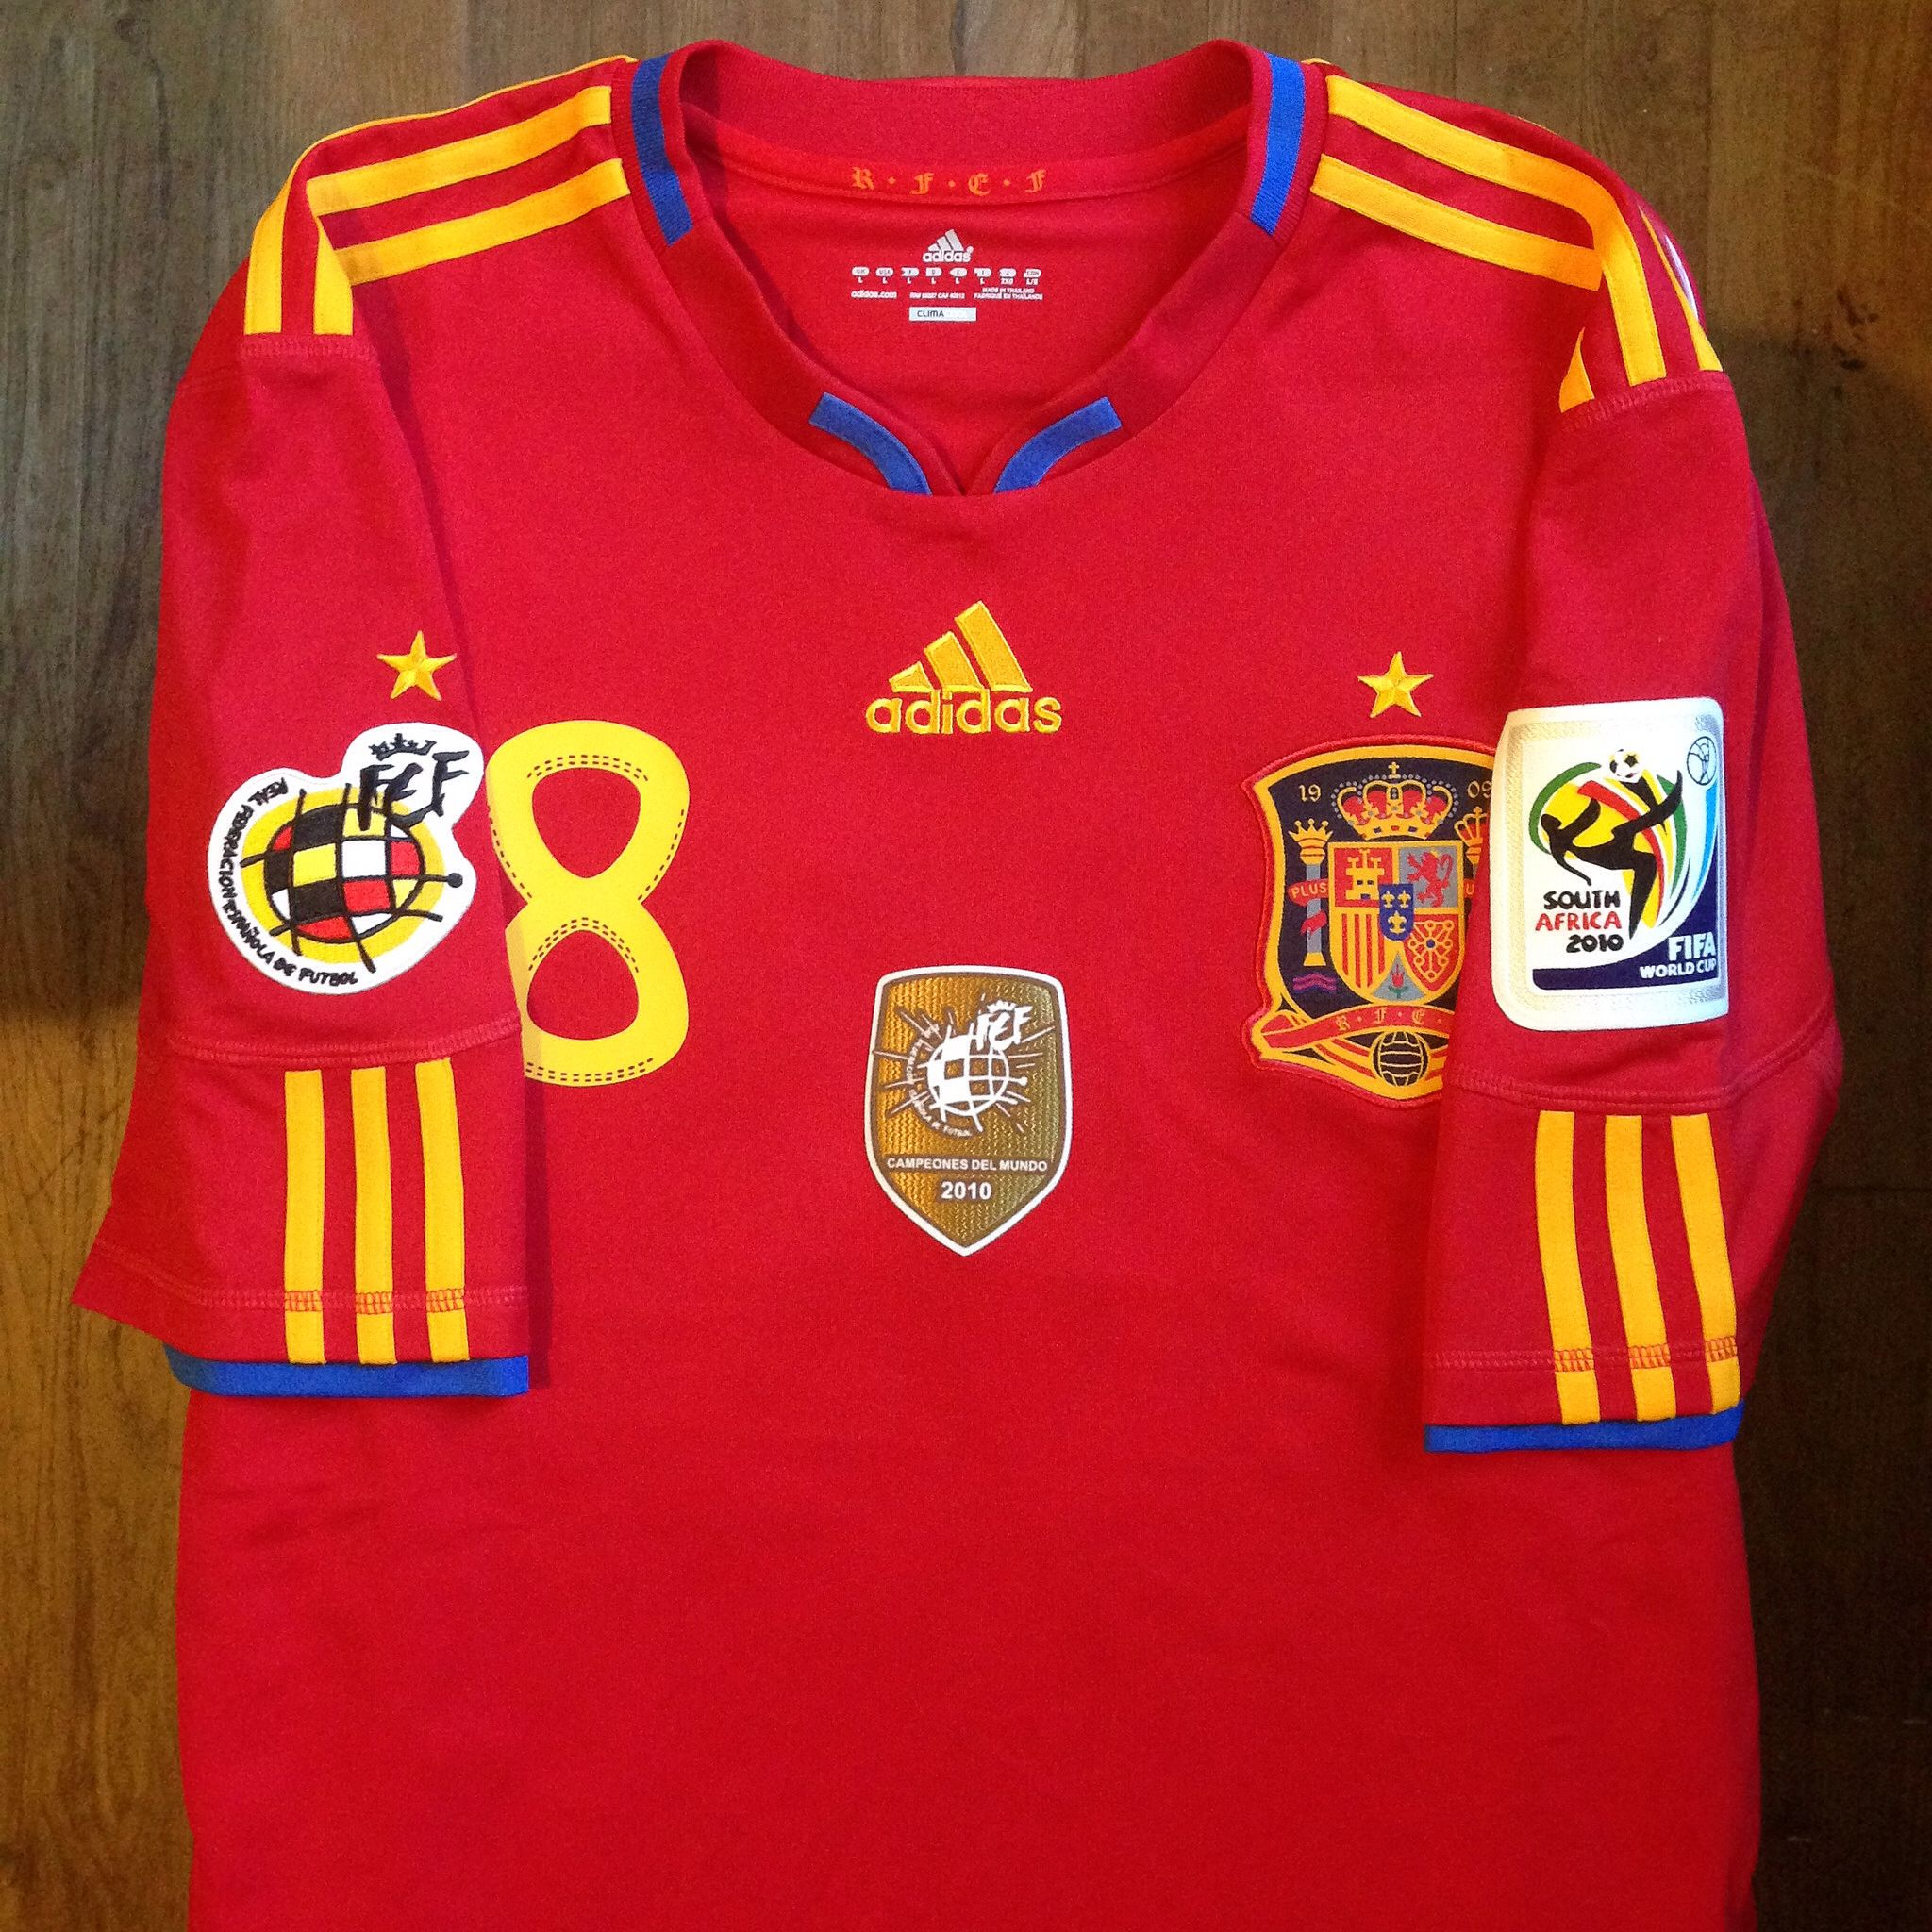 2010 South Africa FIFA World Cup Spain Home Jersey - RFEF Limited Edition     Primera e49144902